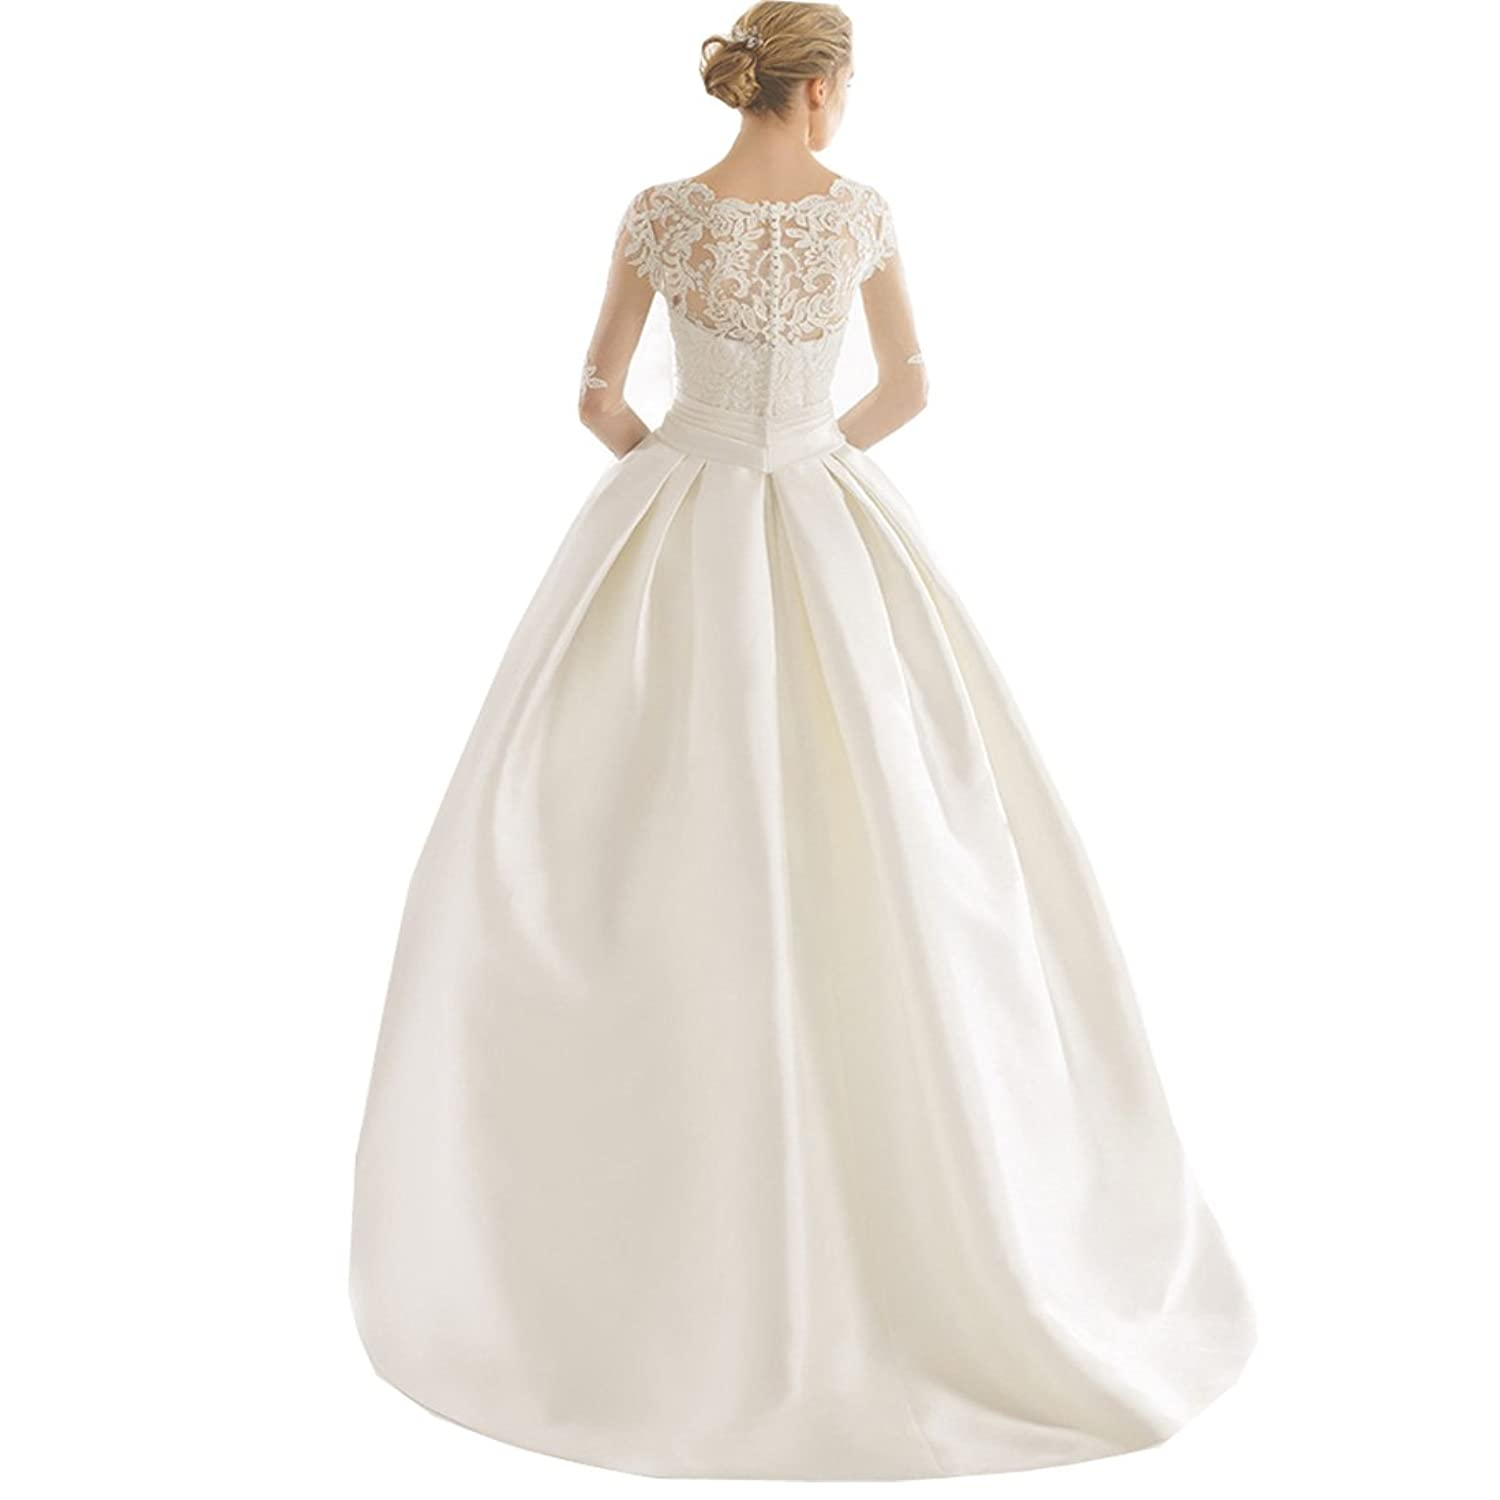 Yuxin Lace Applique Long Sleeves Ball Gown Wedding Dress Satin ...